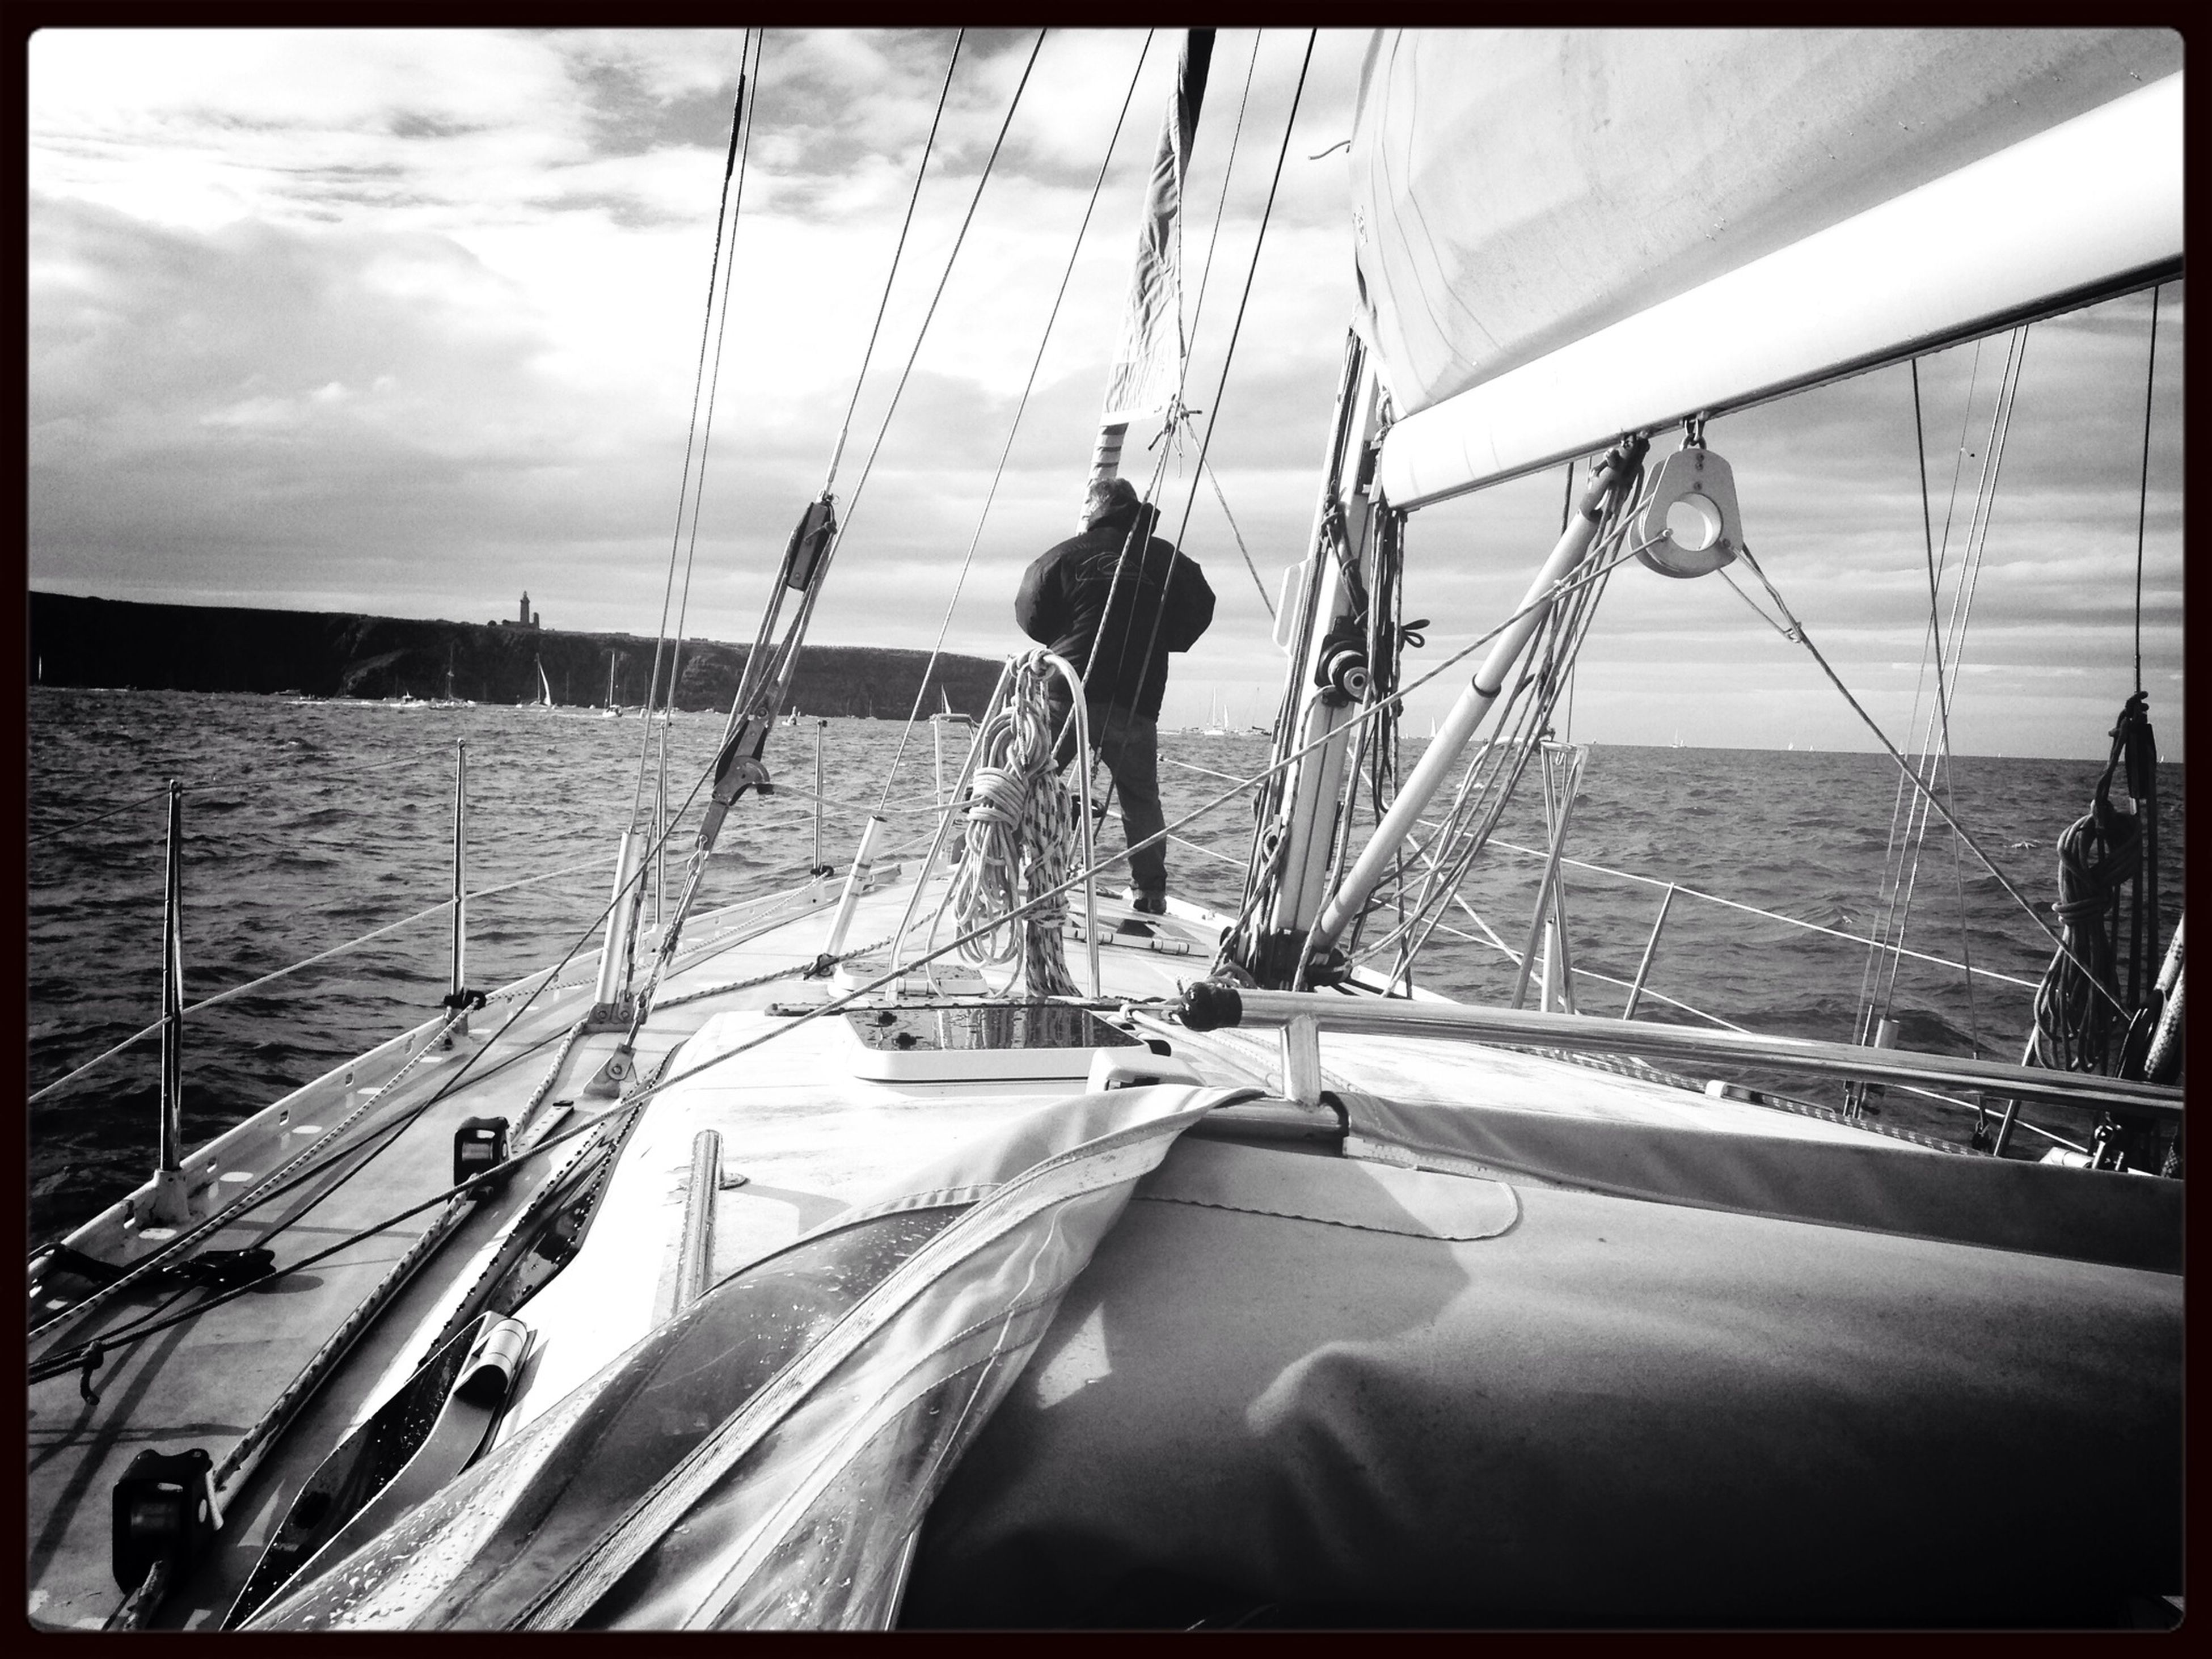 transportation, transfer print, mode of transport, sea, nautical vessel, sky, water, auto post production filter, boat, horizon over water, travel, mast, men, beach, moored, cloud - sky, sailboat, day